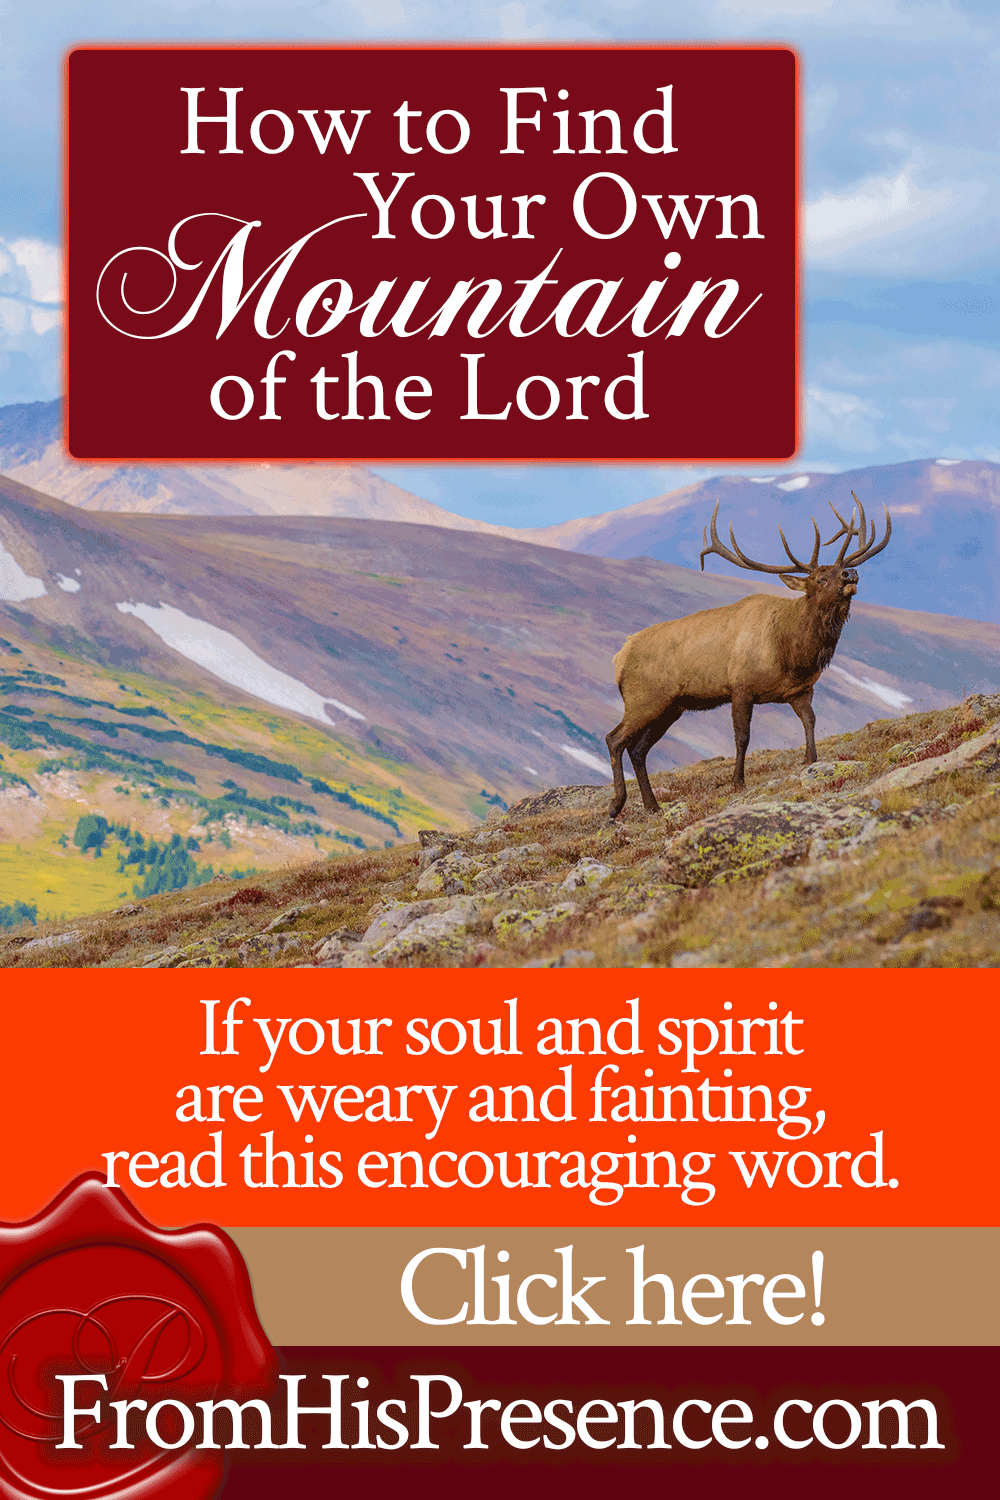 How to Find Your Own Mountain of the Lord | by Jamie Rohrbaugh | FromHisPresence.com